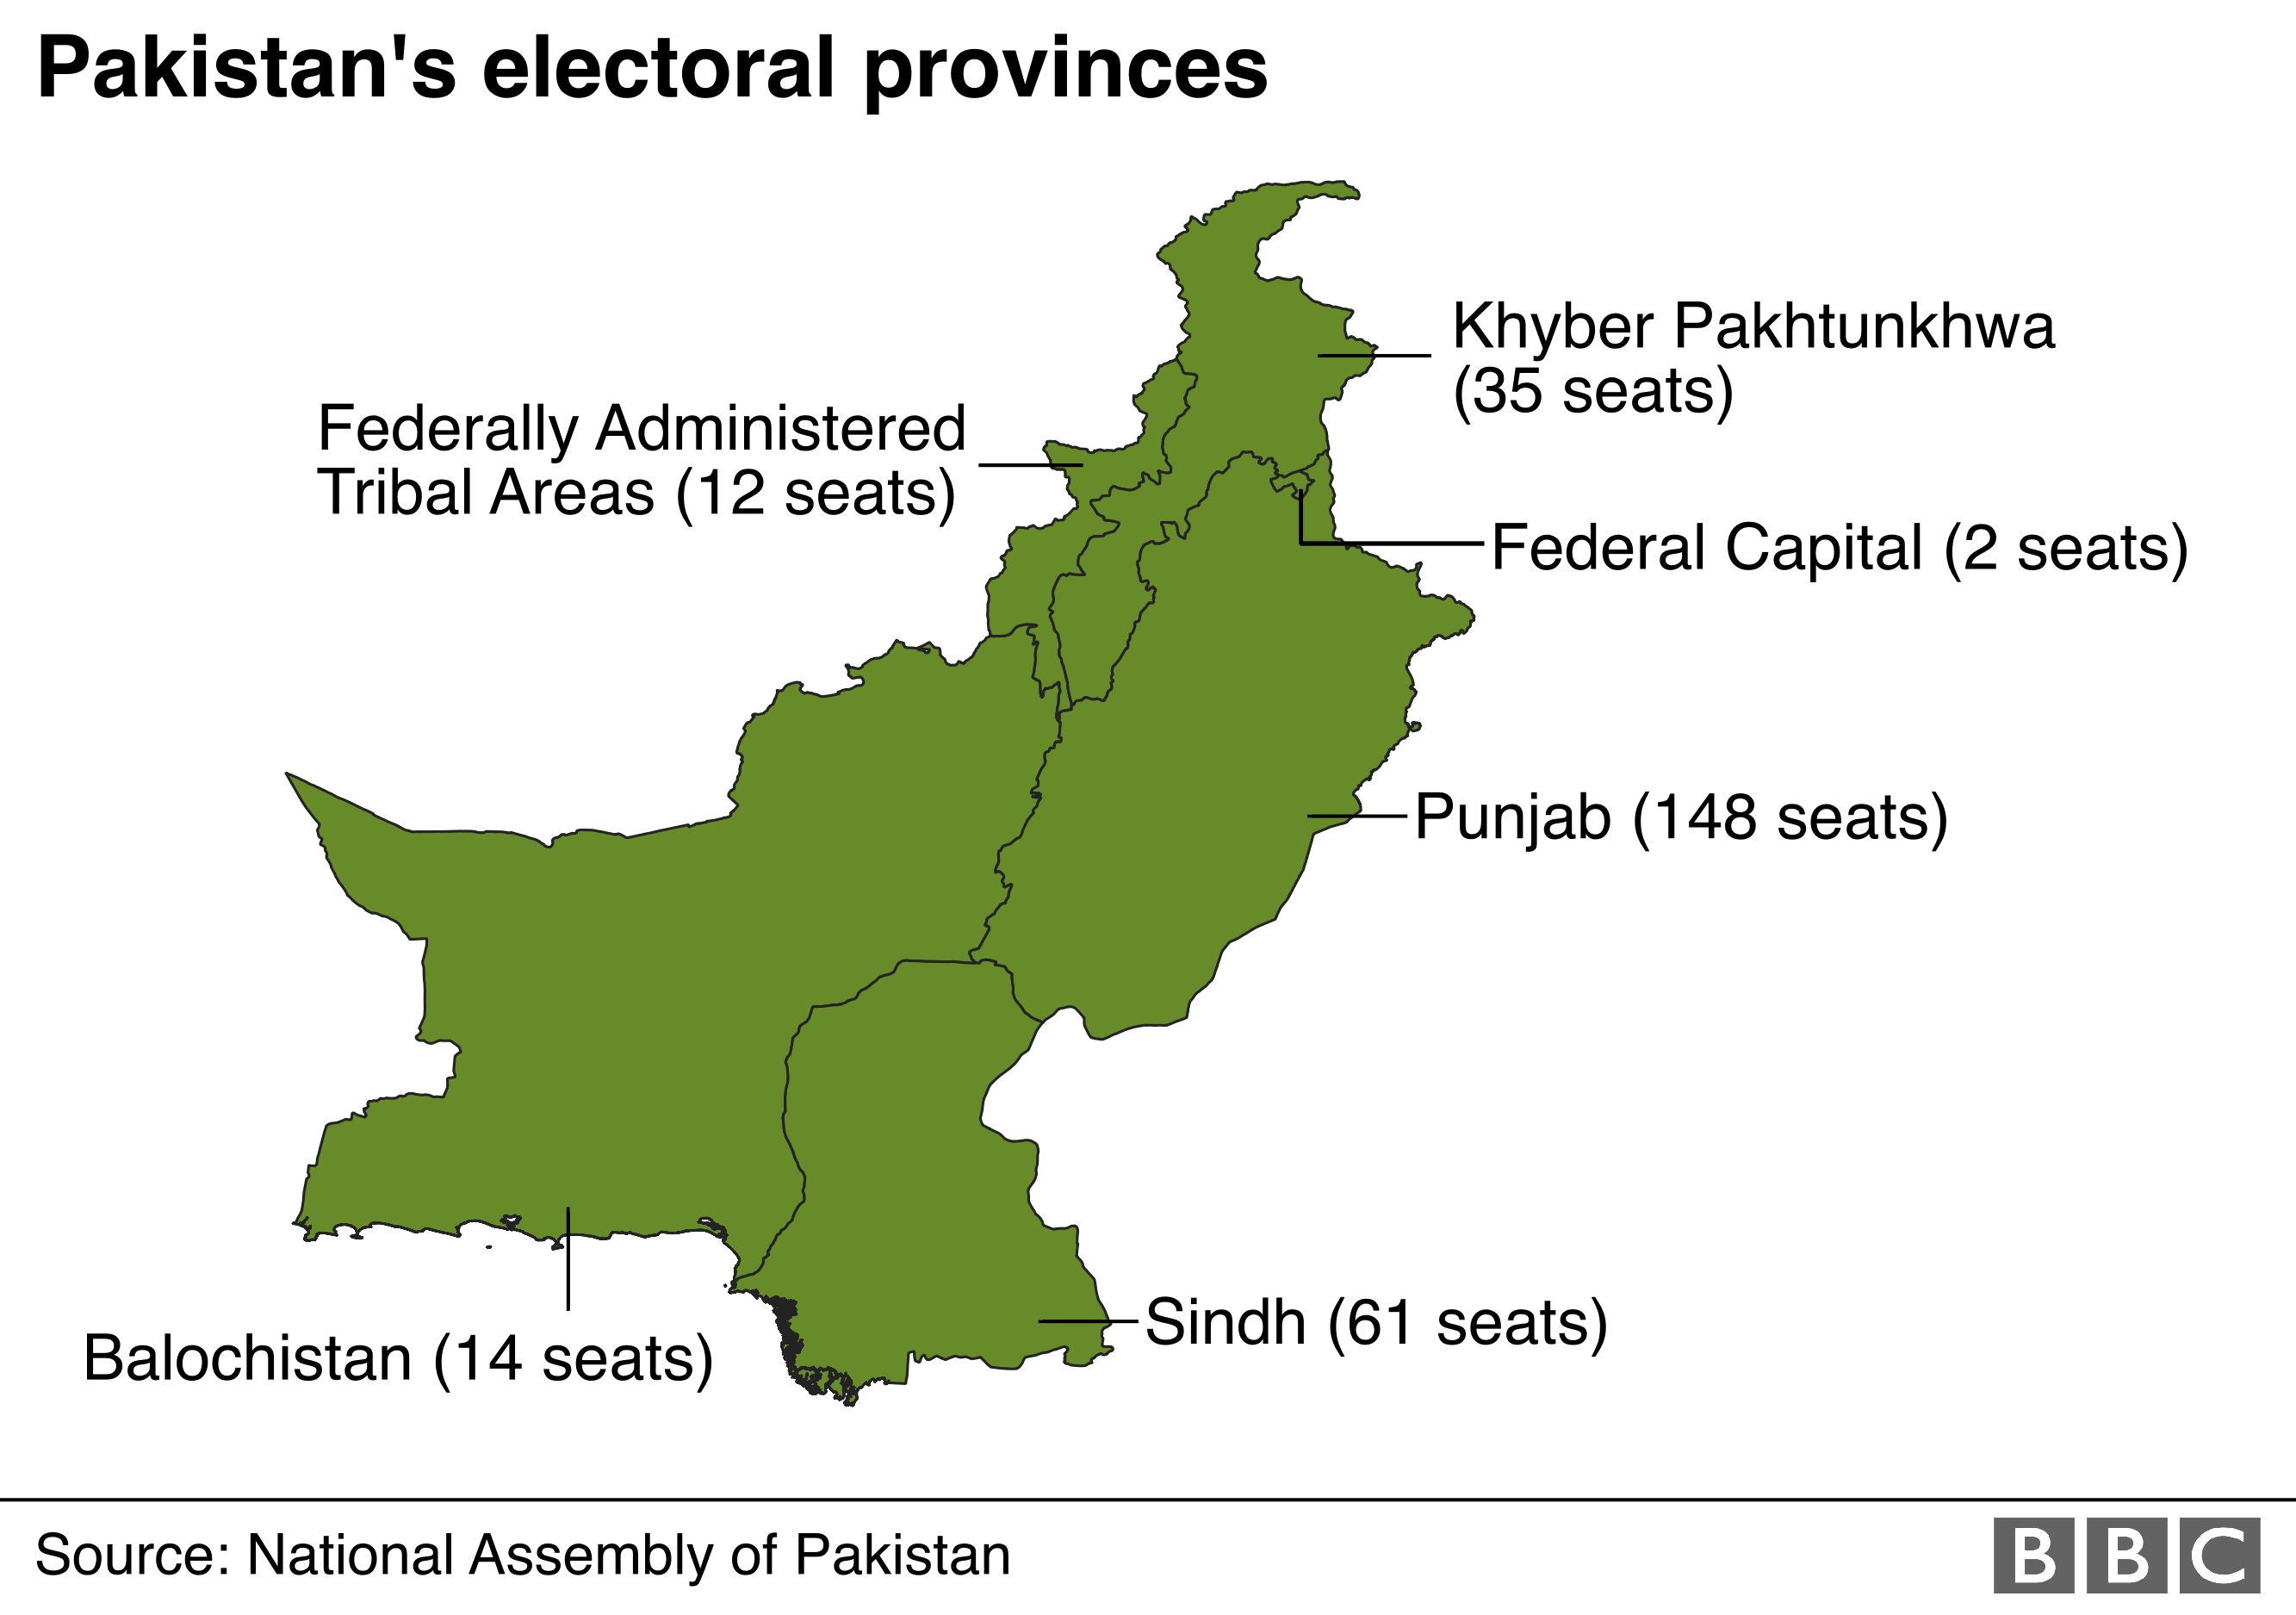 Map showing Pakistan's electoral provinces